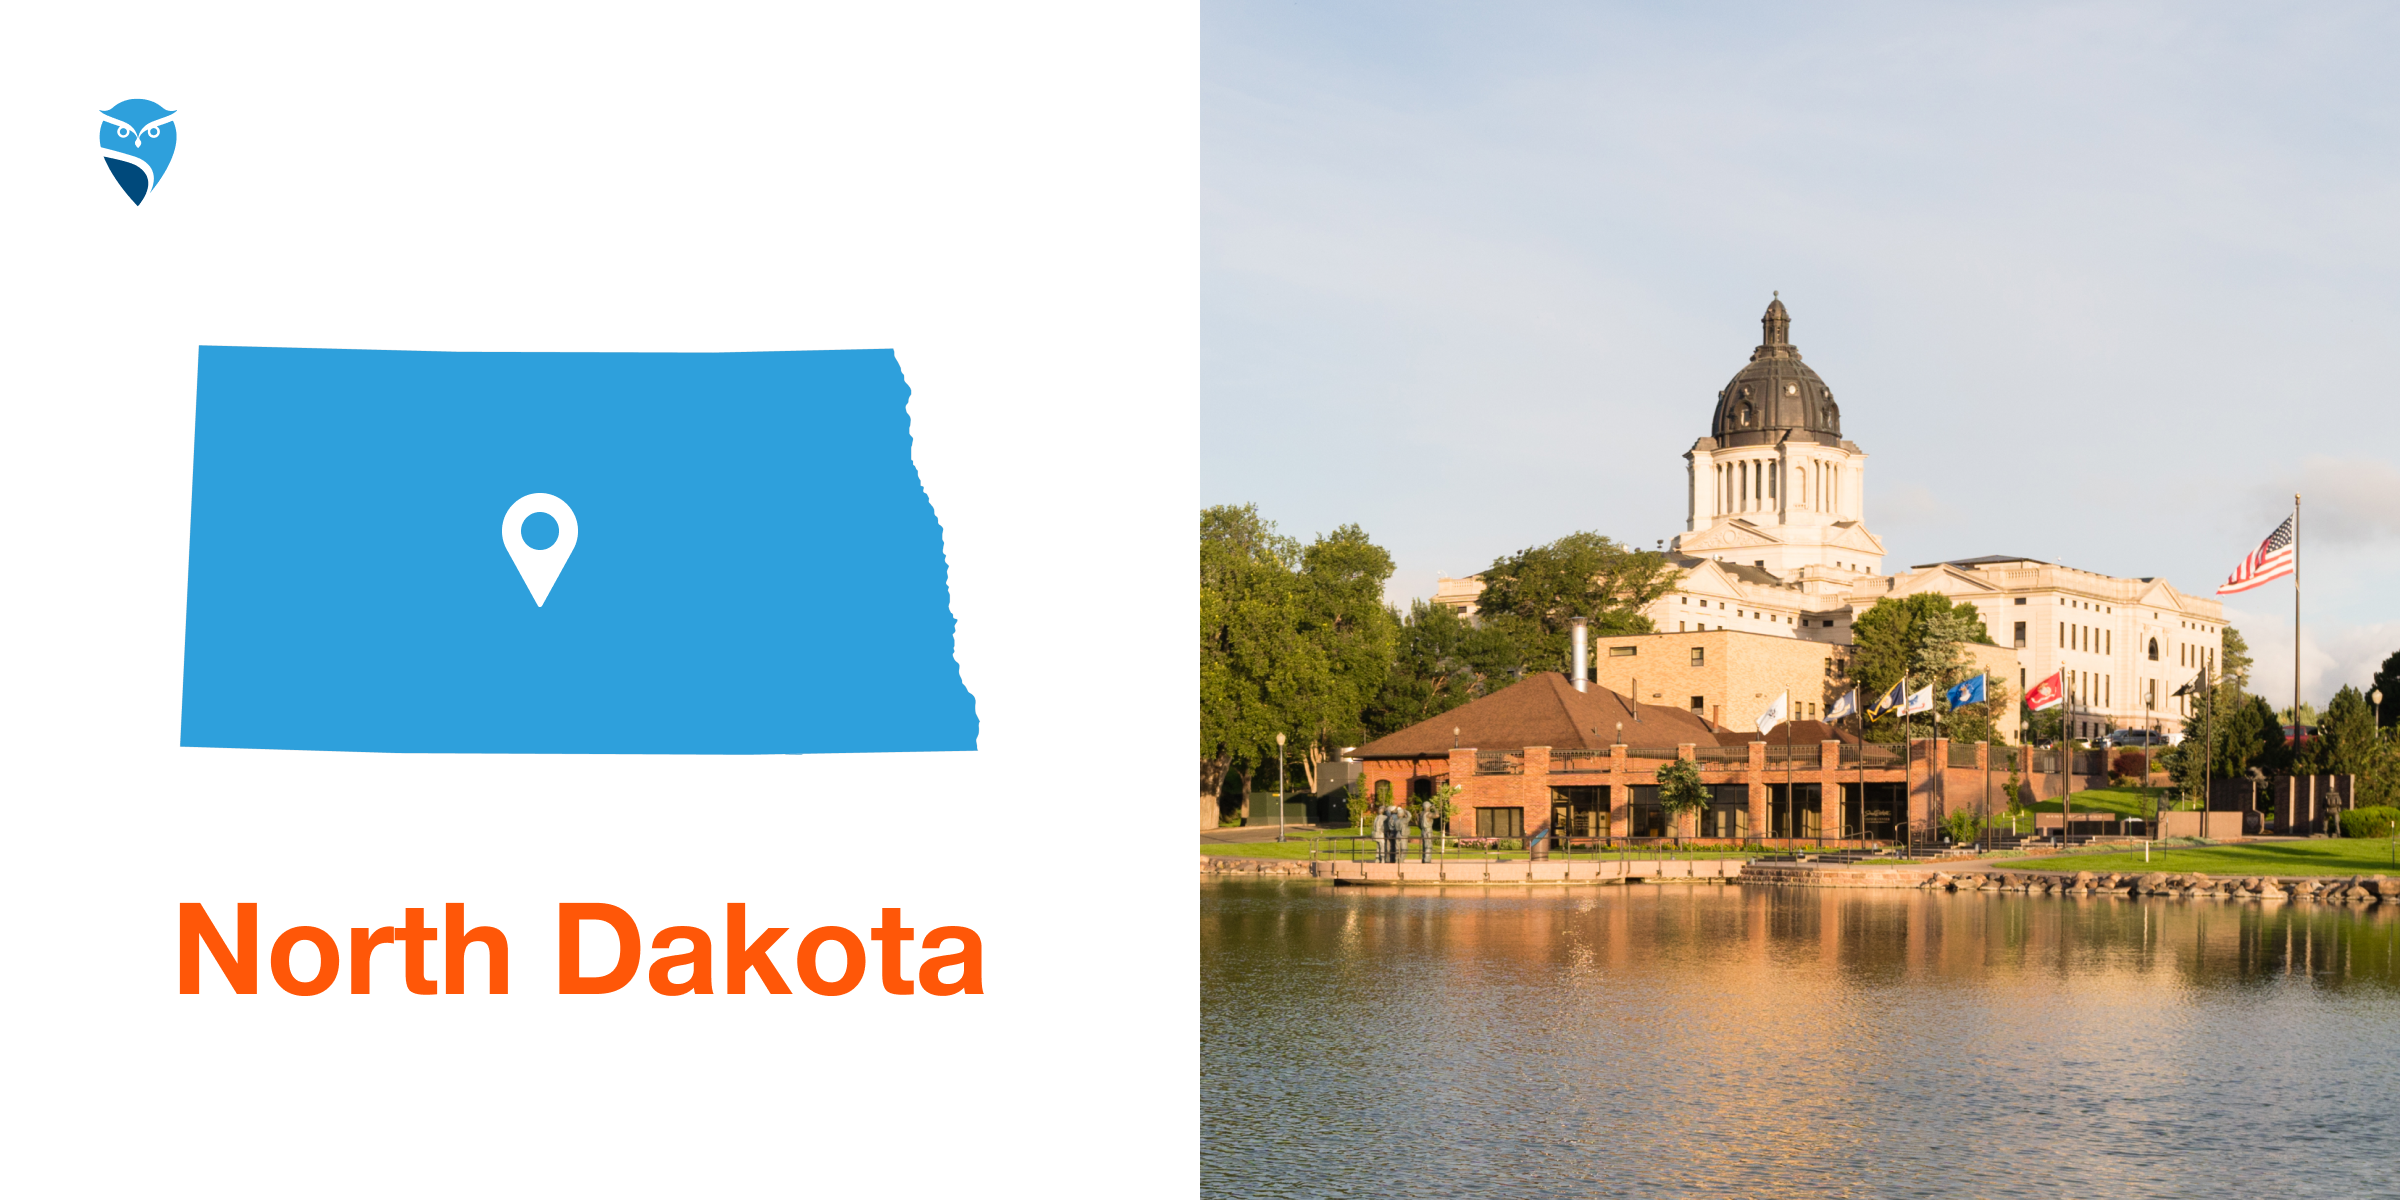 Find an appearance attorney in North Dakota within 60 seconds